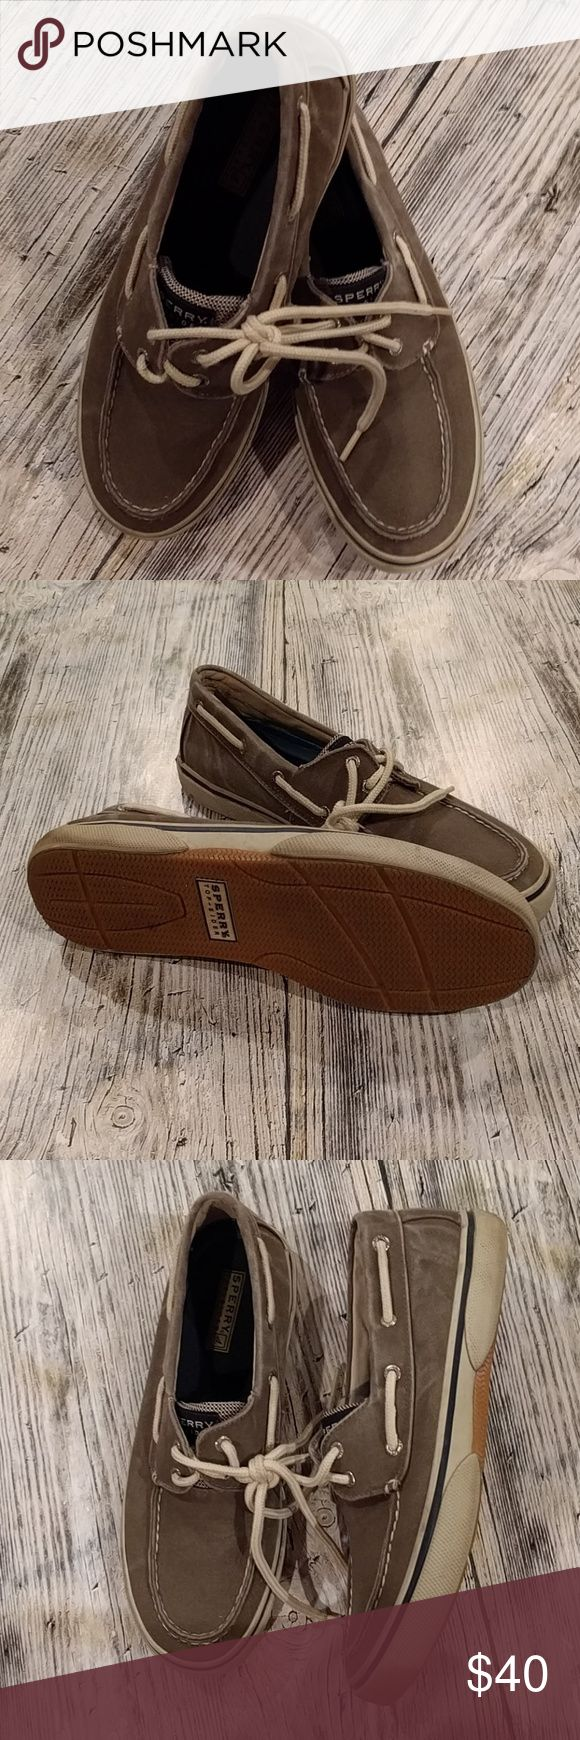 MENS Sperry Top-Sider Men's Sperry Top-Sider  excellent condition like new Size 9 Sperry Top-Sider Shoes Boat Shoes